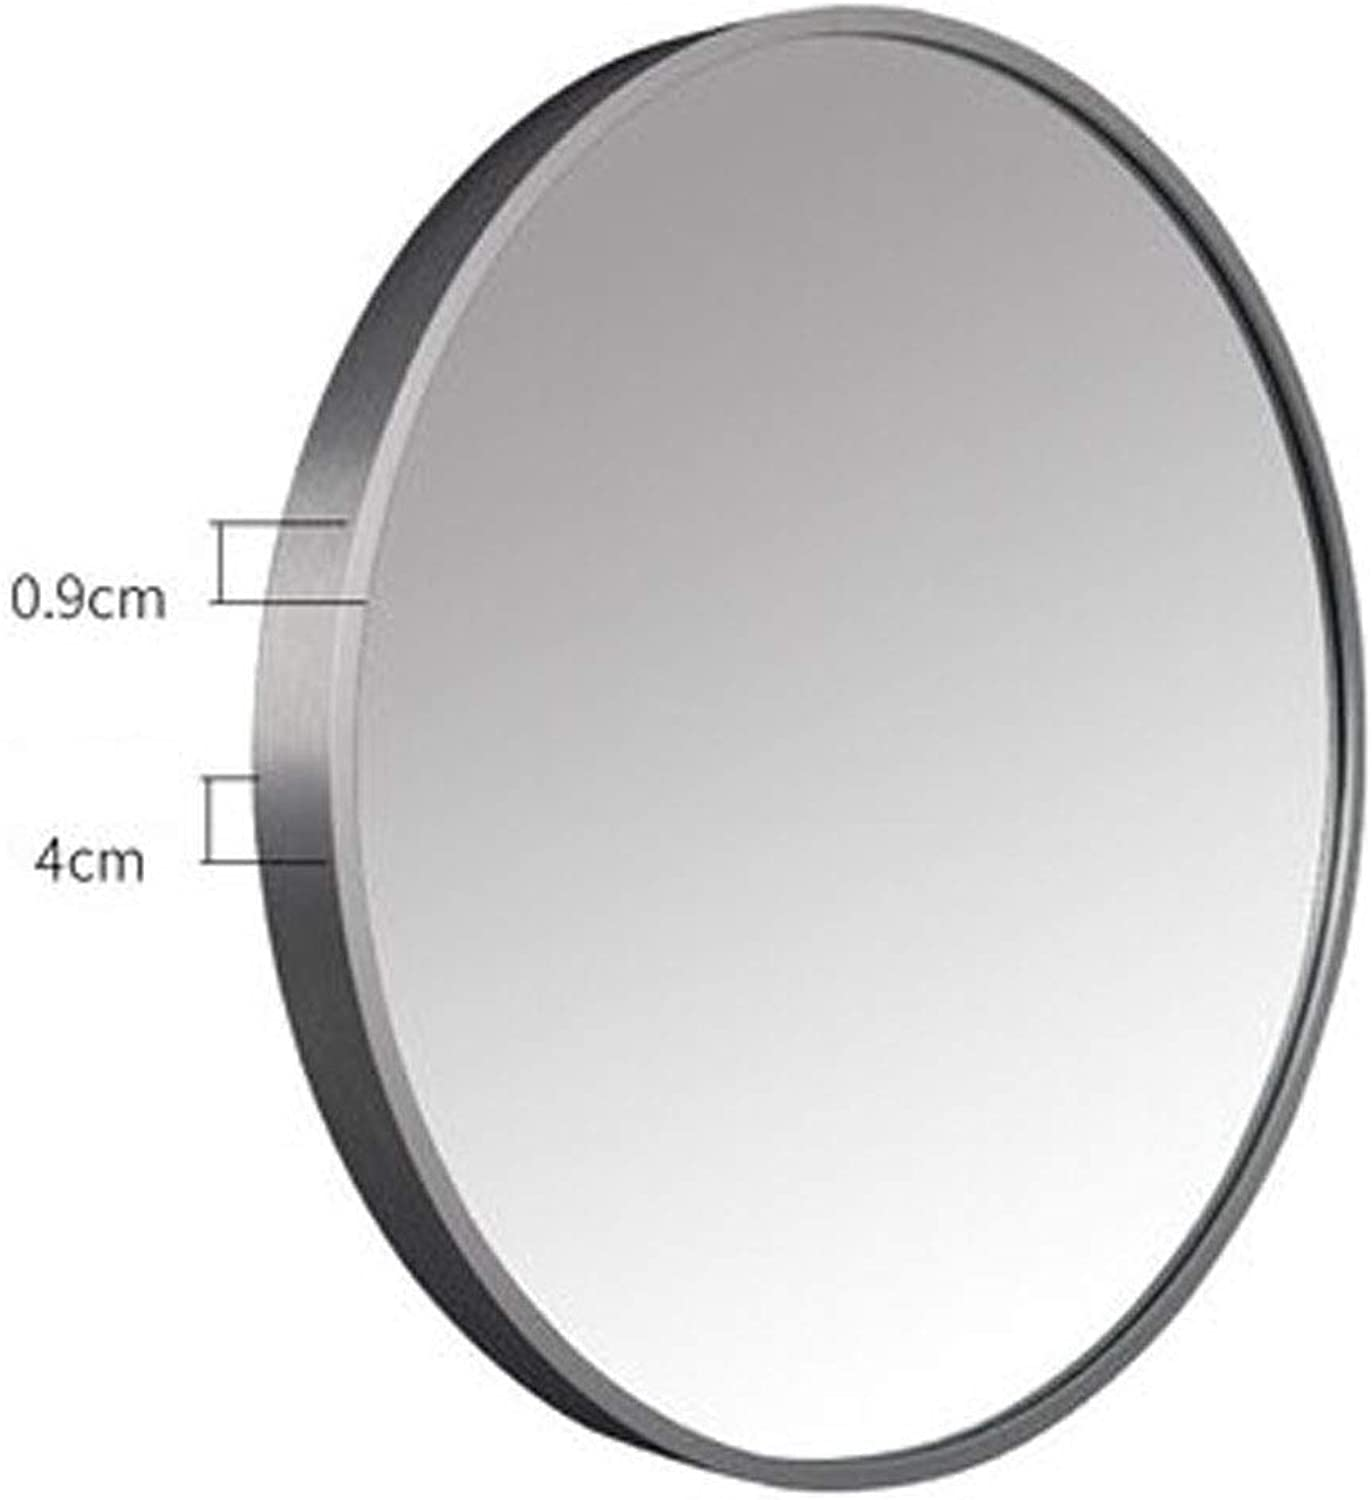 Contemporary Brushed Metal Silver Wall Mirror Glass Panel Silver Framed Rounded Circle Deep Set Design